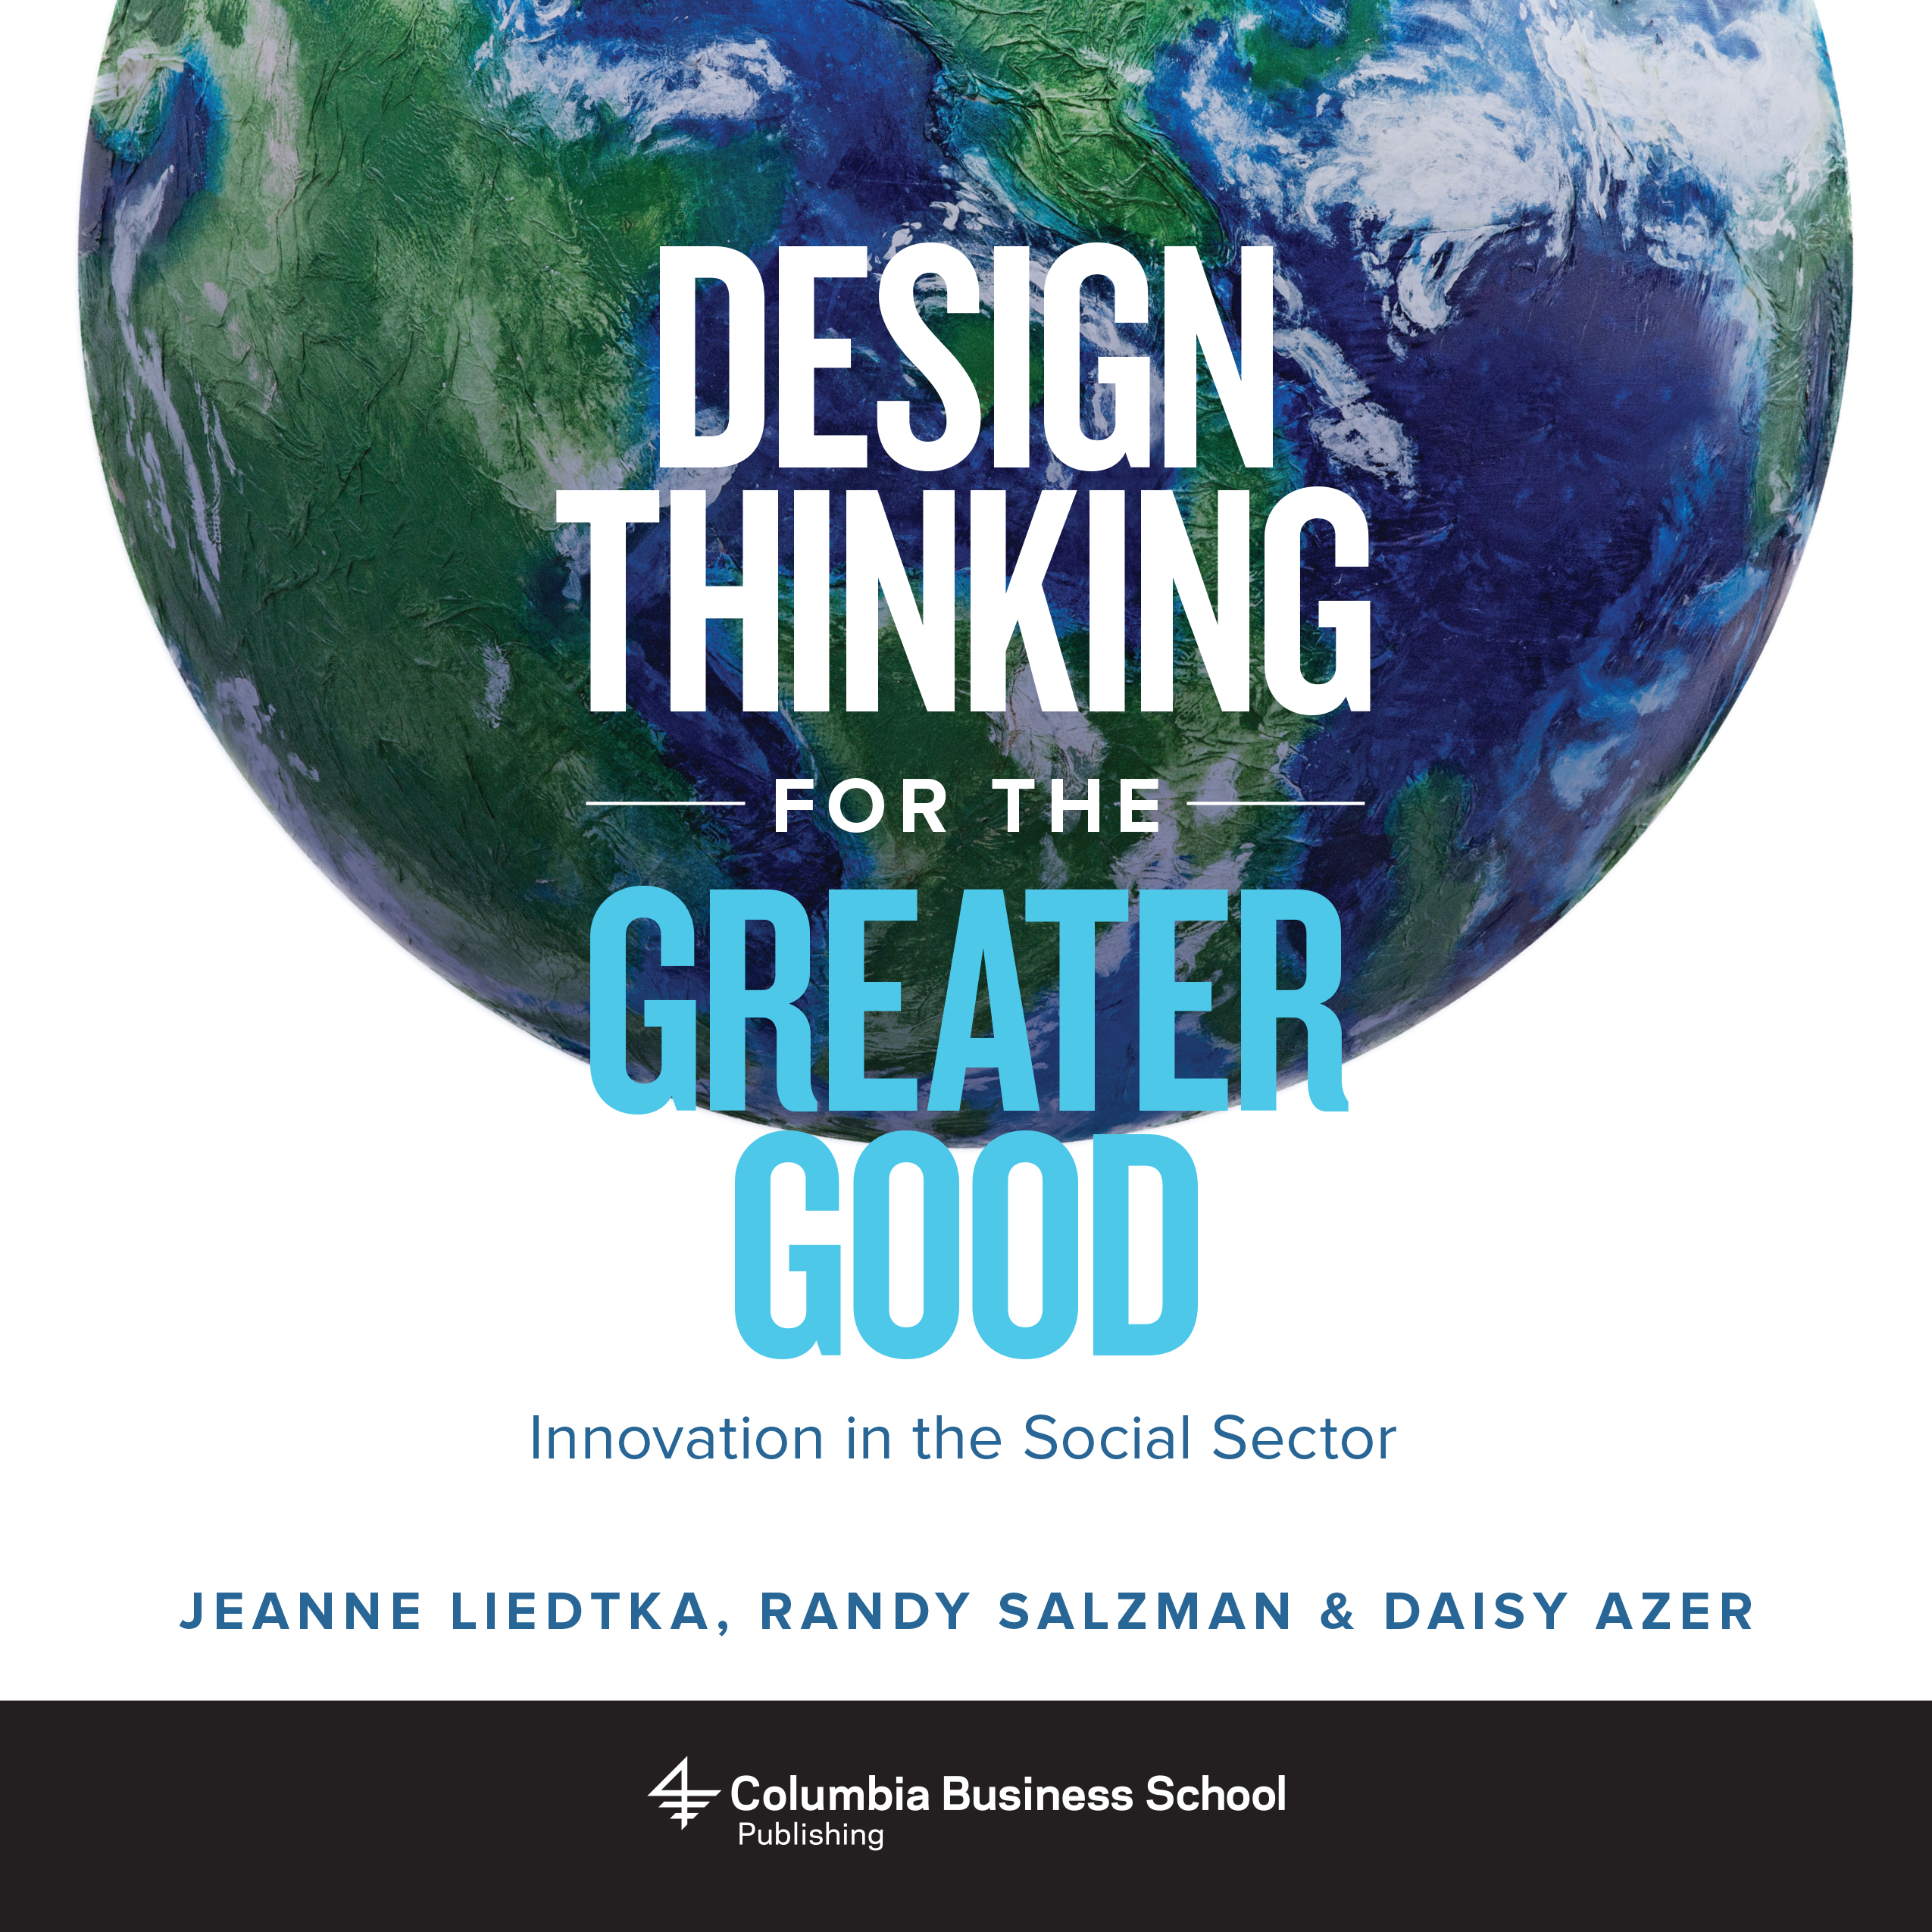 Design Thinking For The Greater Good Innovation In The Social Sector By Jeanne Liedtka Randy Salzman Daisy Azer Social Impact By Design